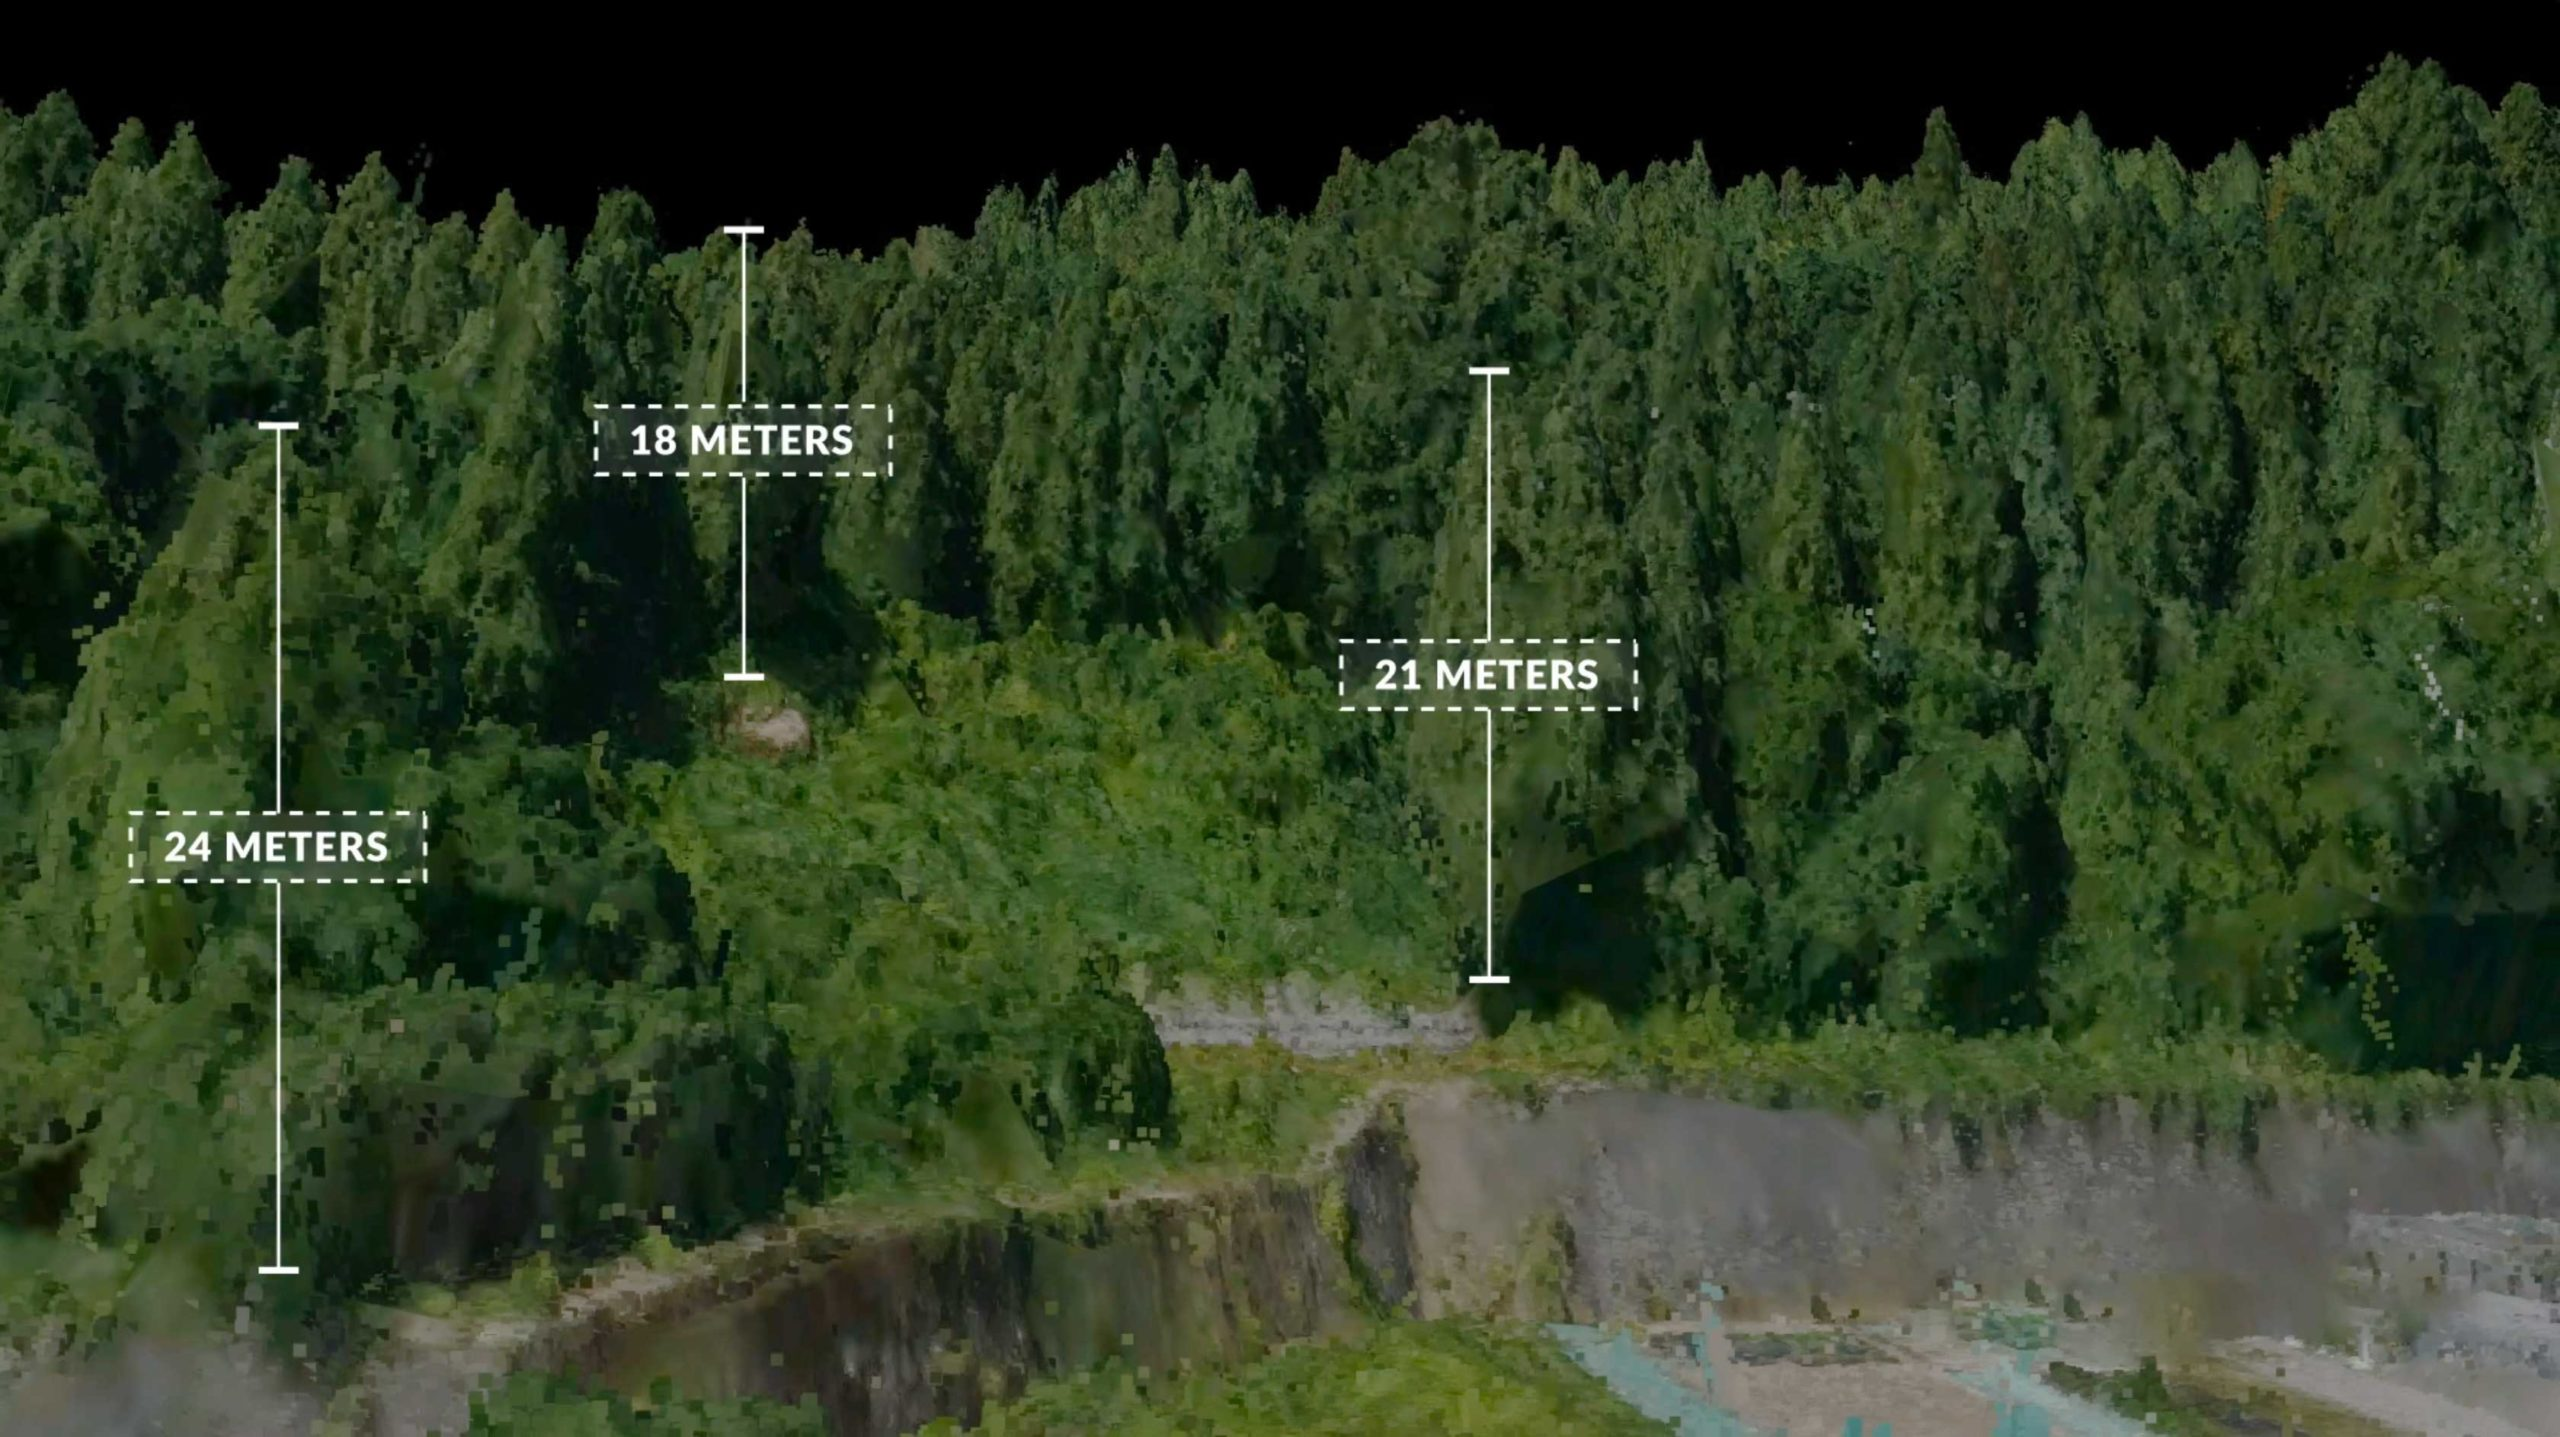 3d-point-cloud-forest-tree-measurments